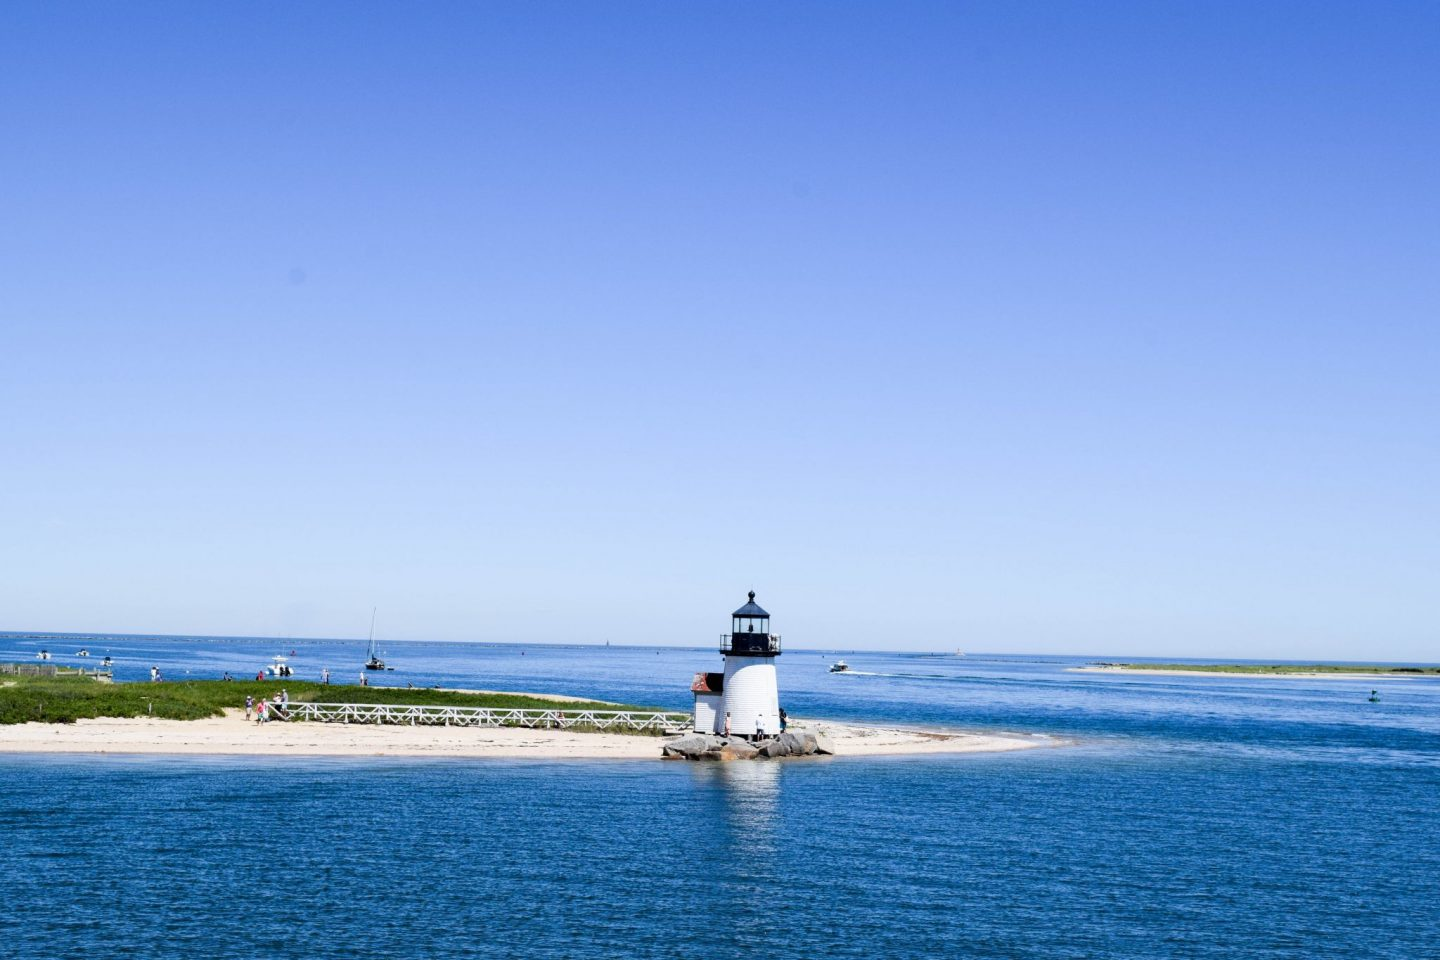 Postcards from Nantucket: A Day Trip to Nantucket